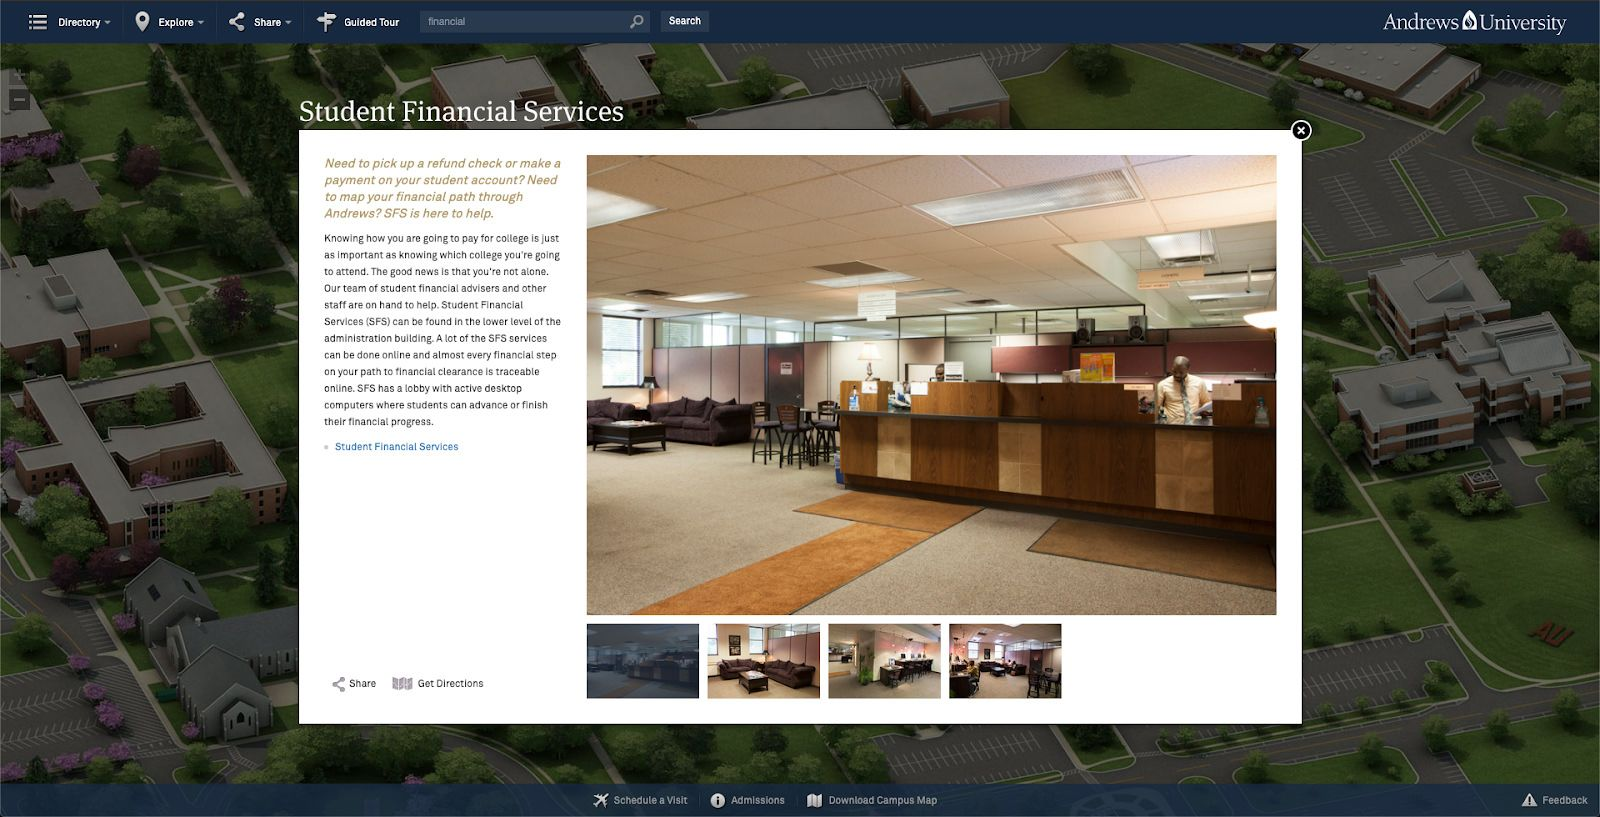 Andrews University posts pictures of their Student Financial Services office online.